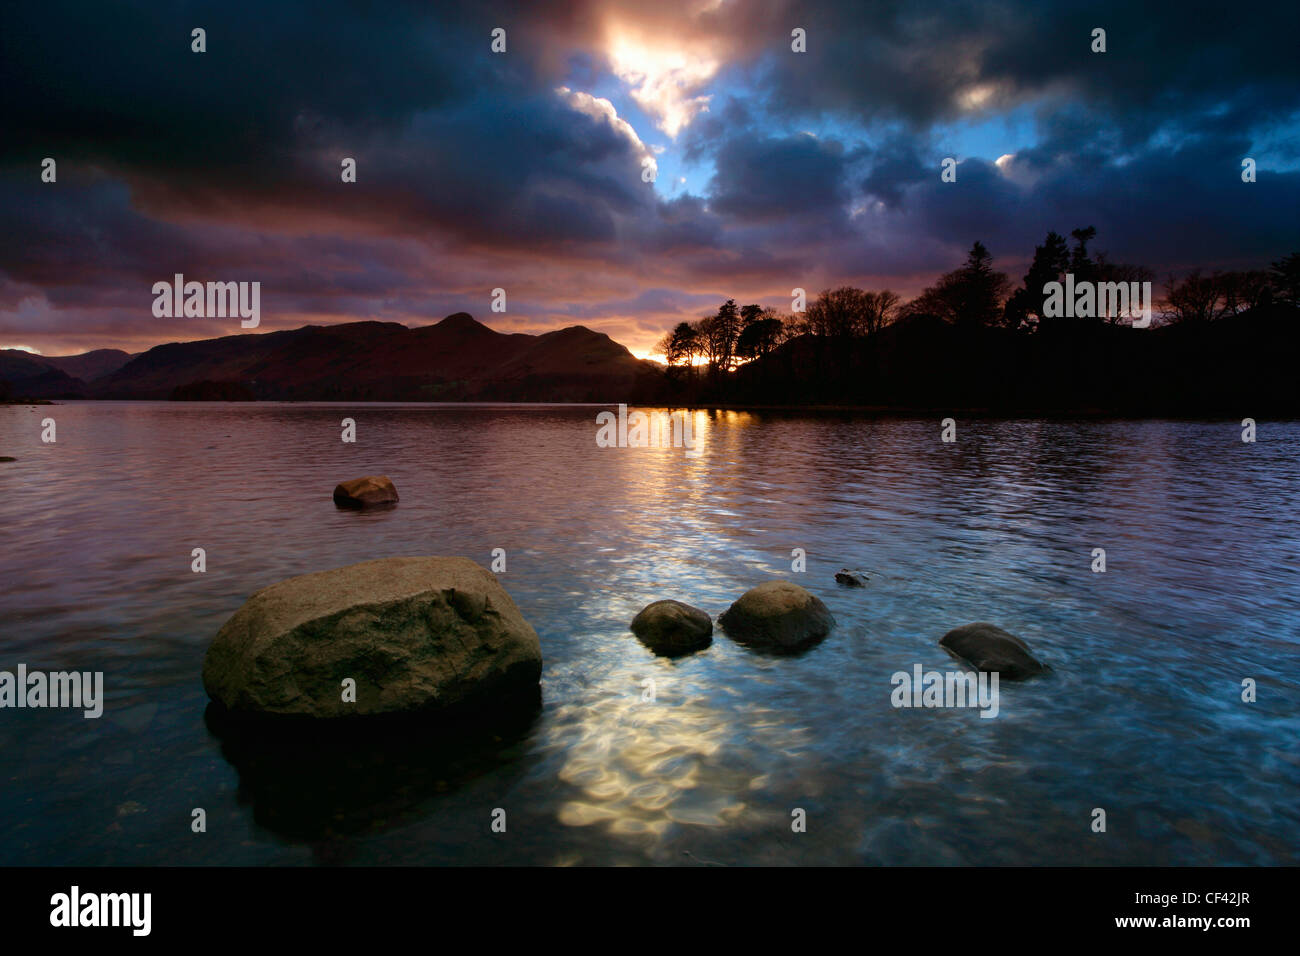 Sunset over Derwent Water in the Lake District. - Stock Image